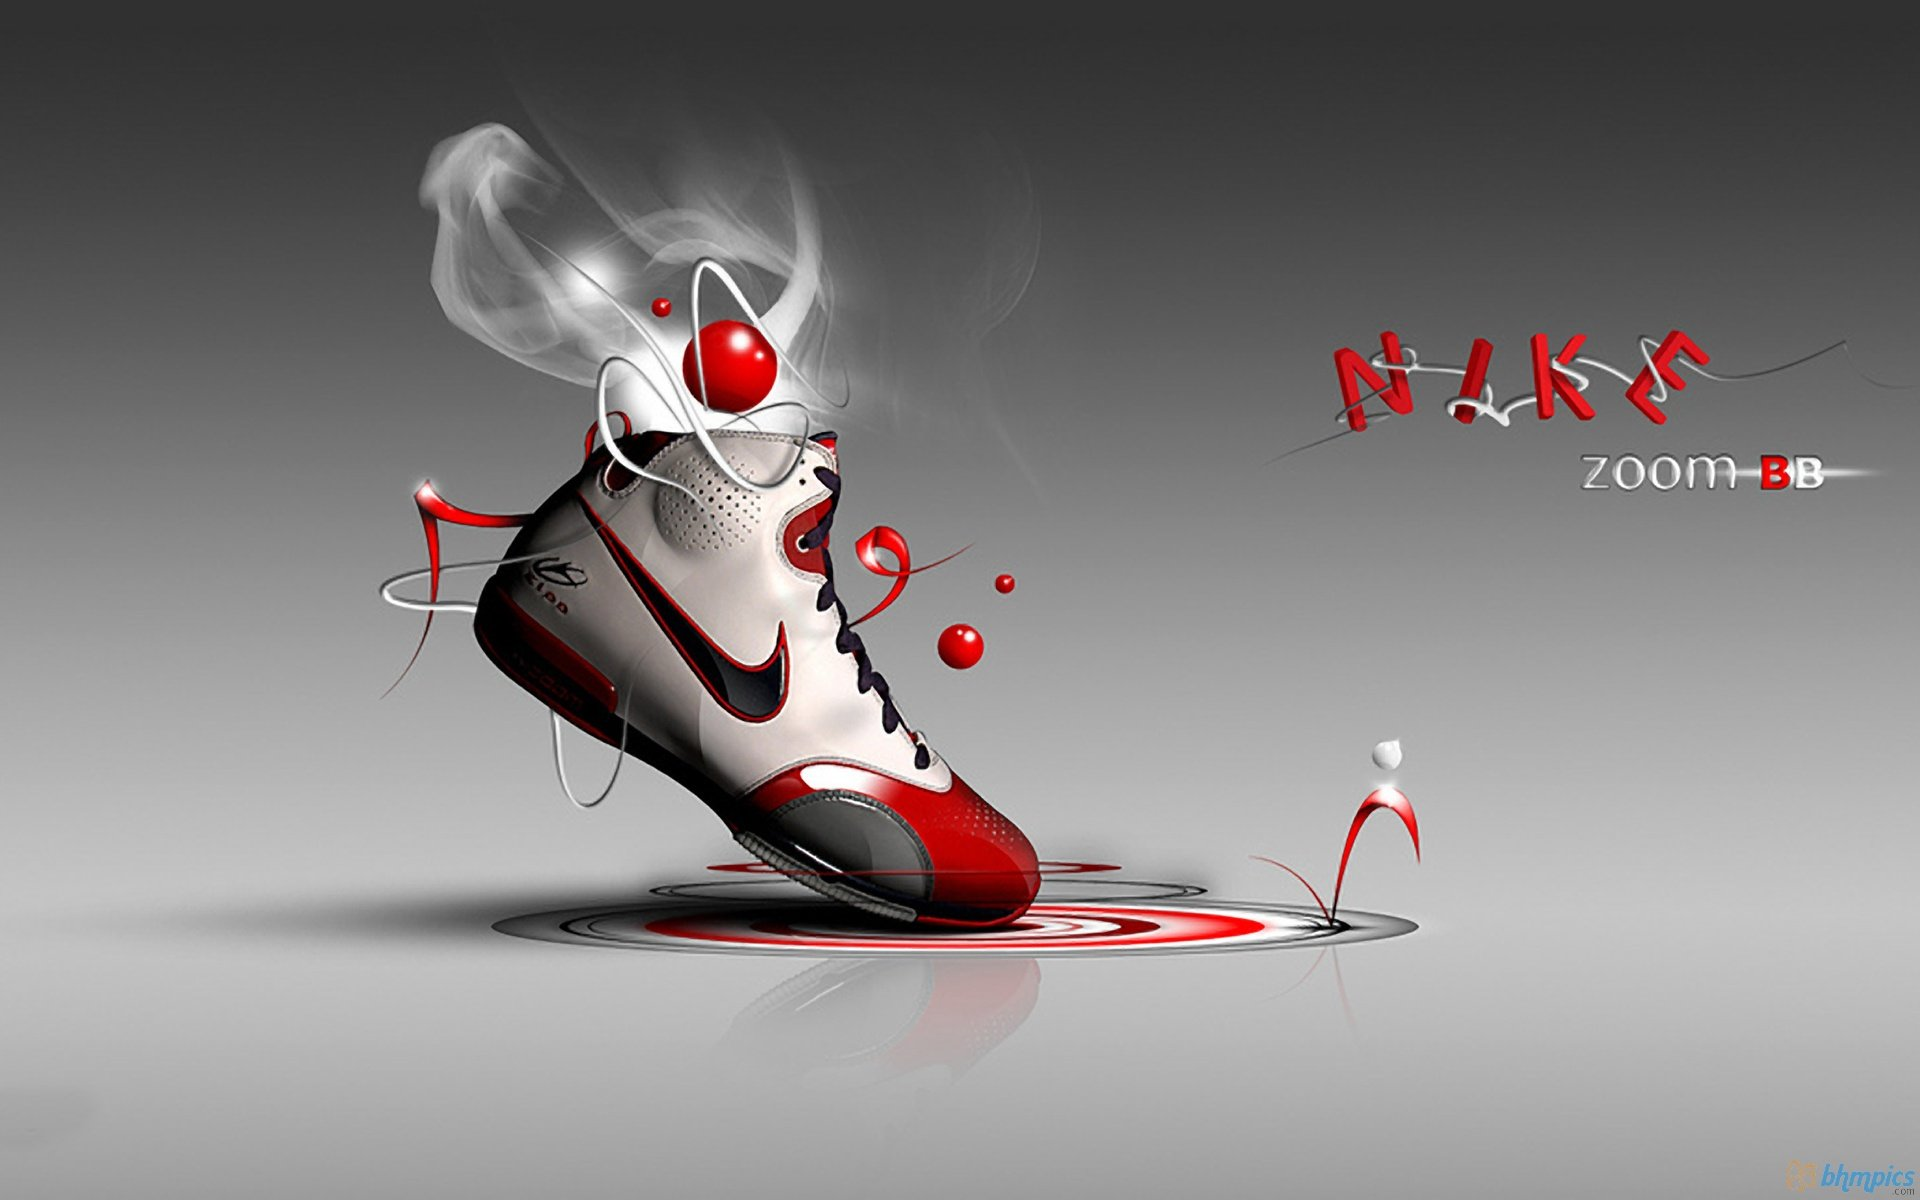 Nike Wallpaper HD 1080p - WallpaperSafari